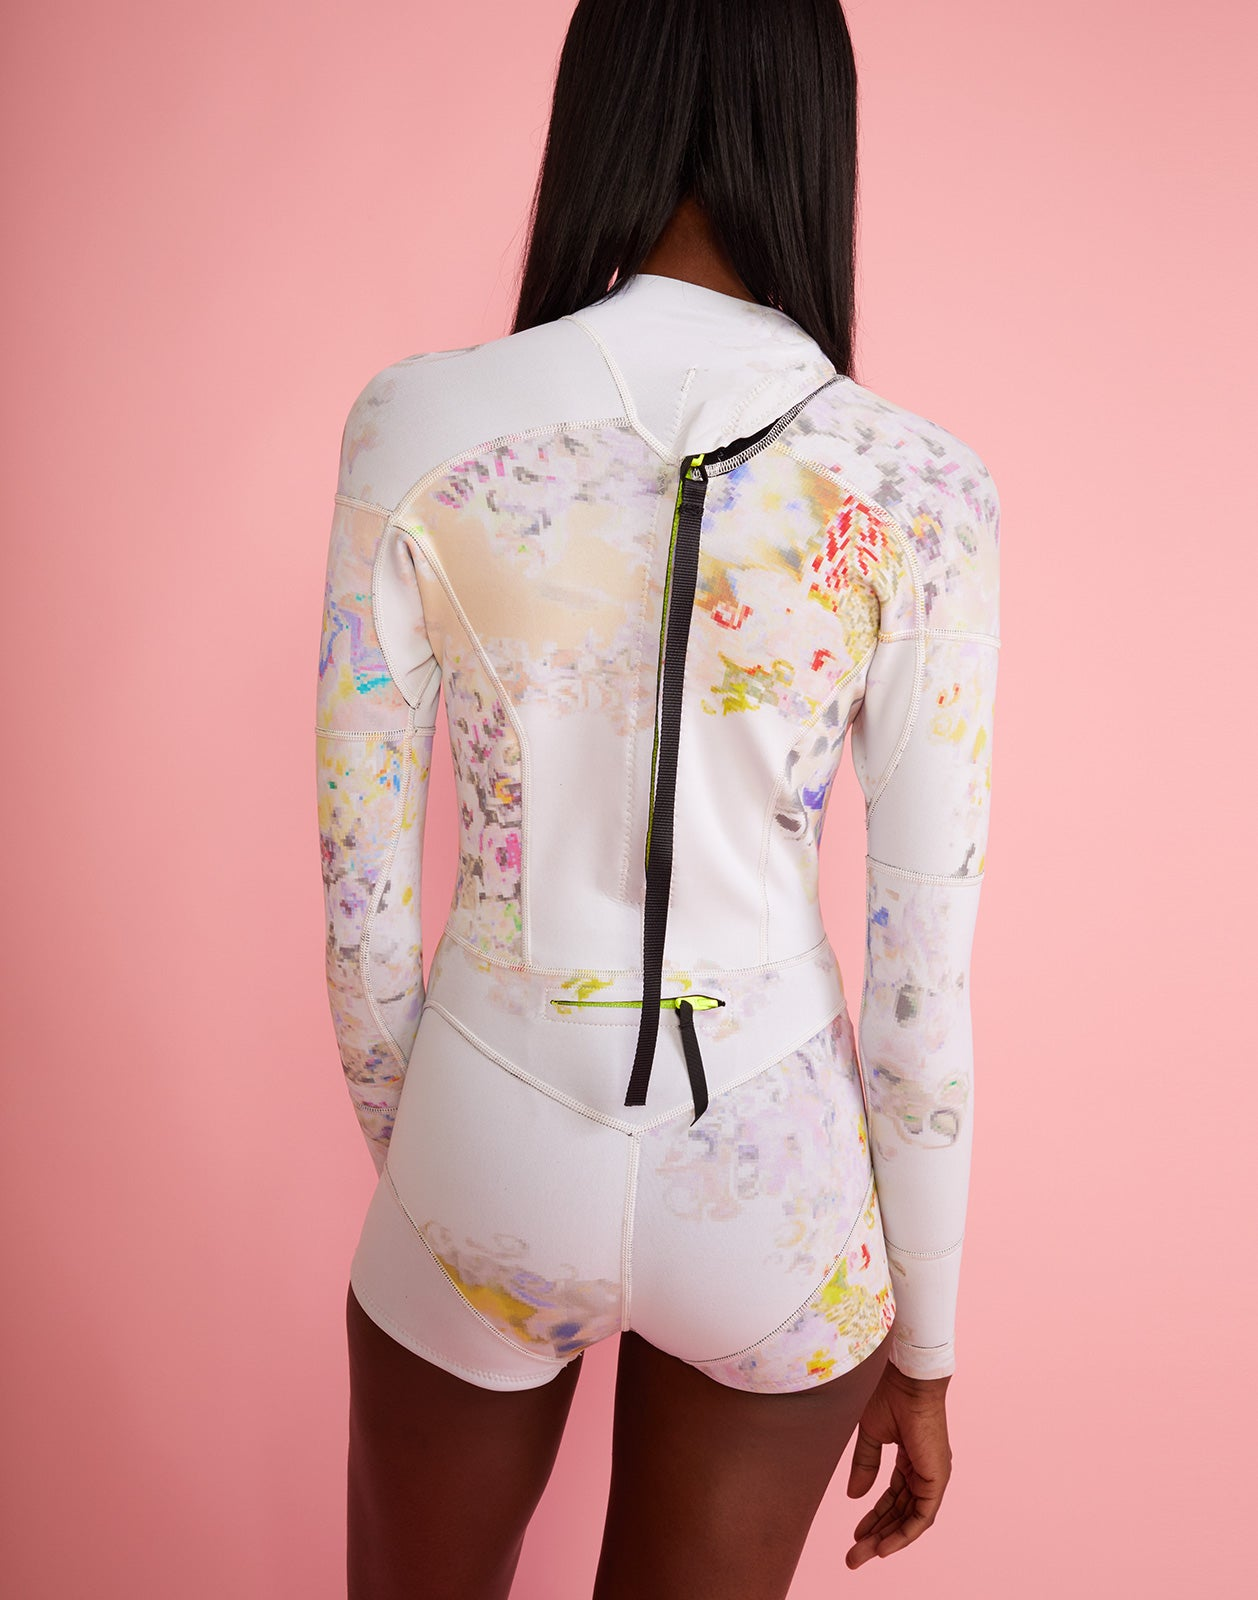 Back view of full performance neoprene wetsuit in pastel floral print.